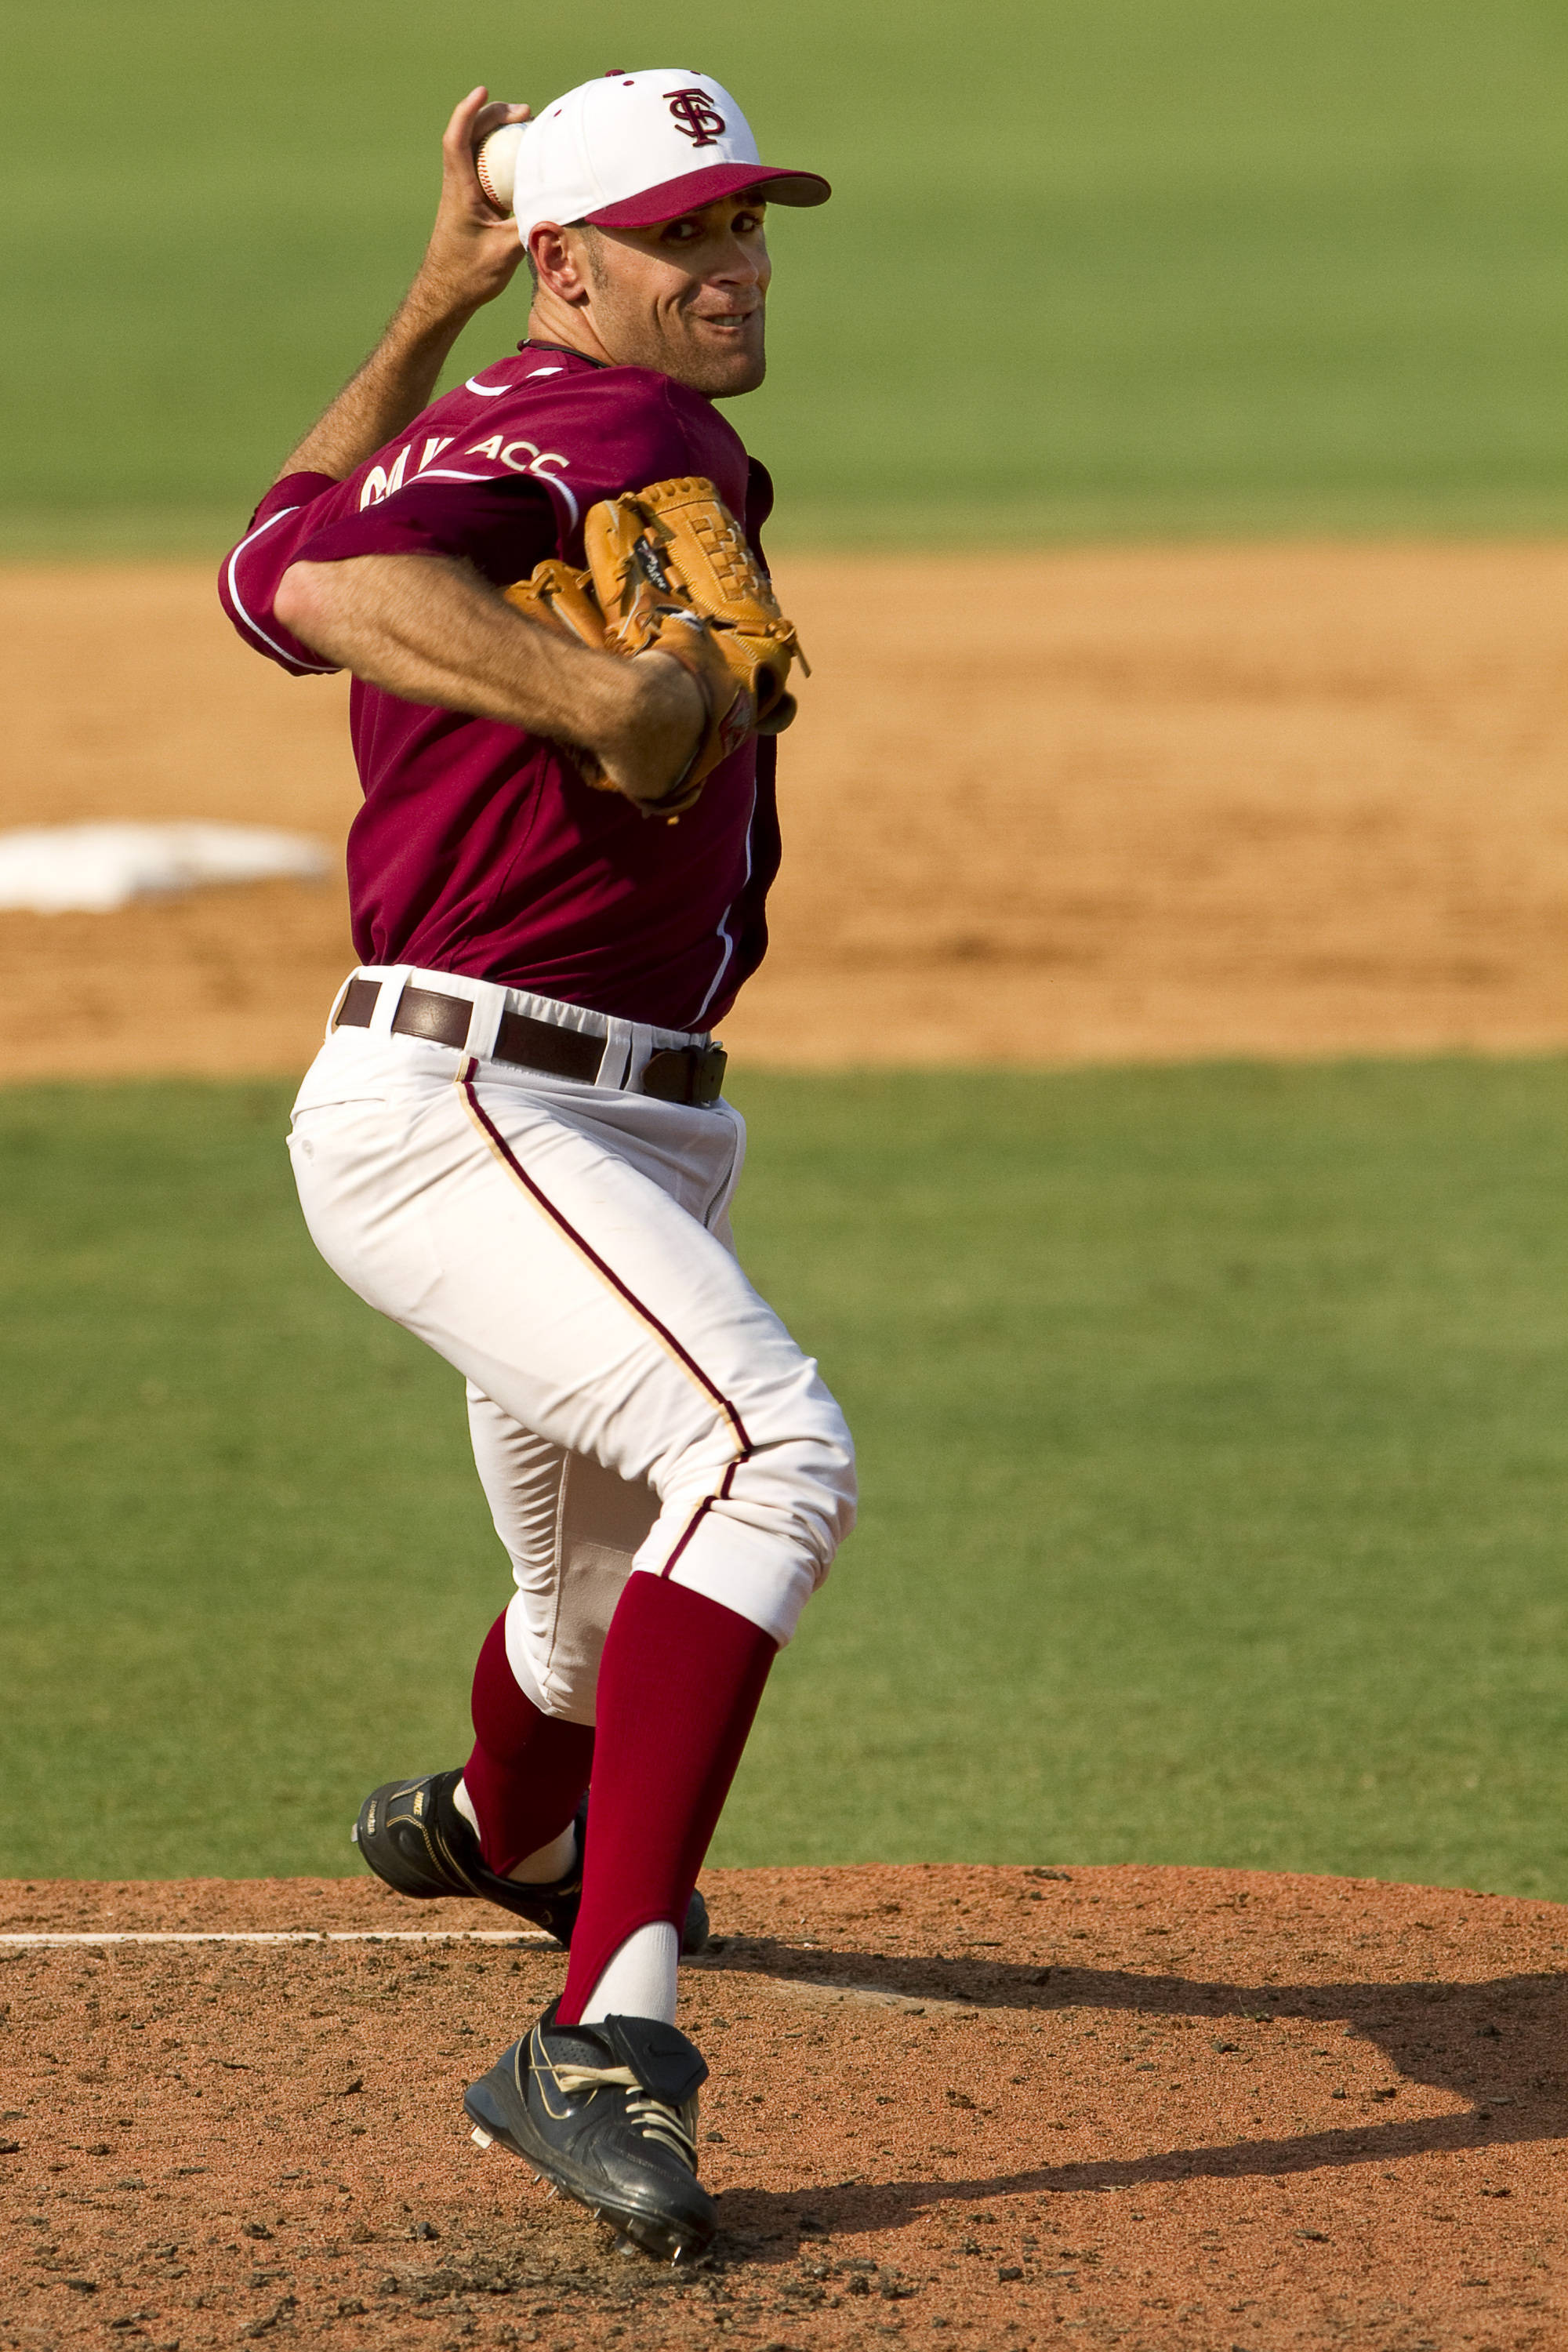 Sean Gilmartin (3) pitches in Saturday's game against Texas A&M.